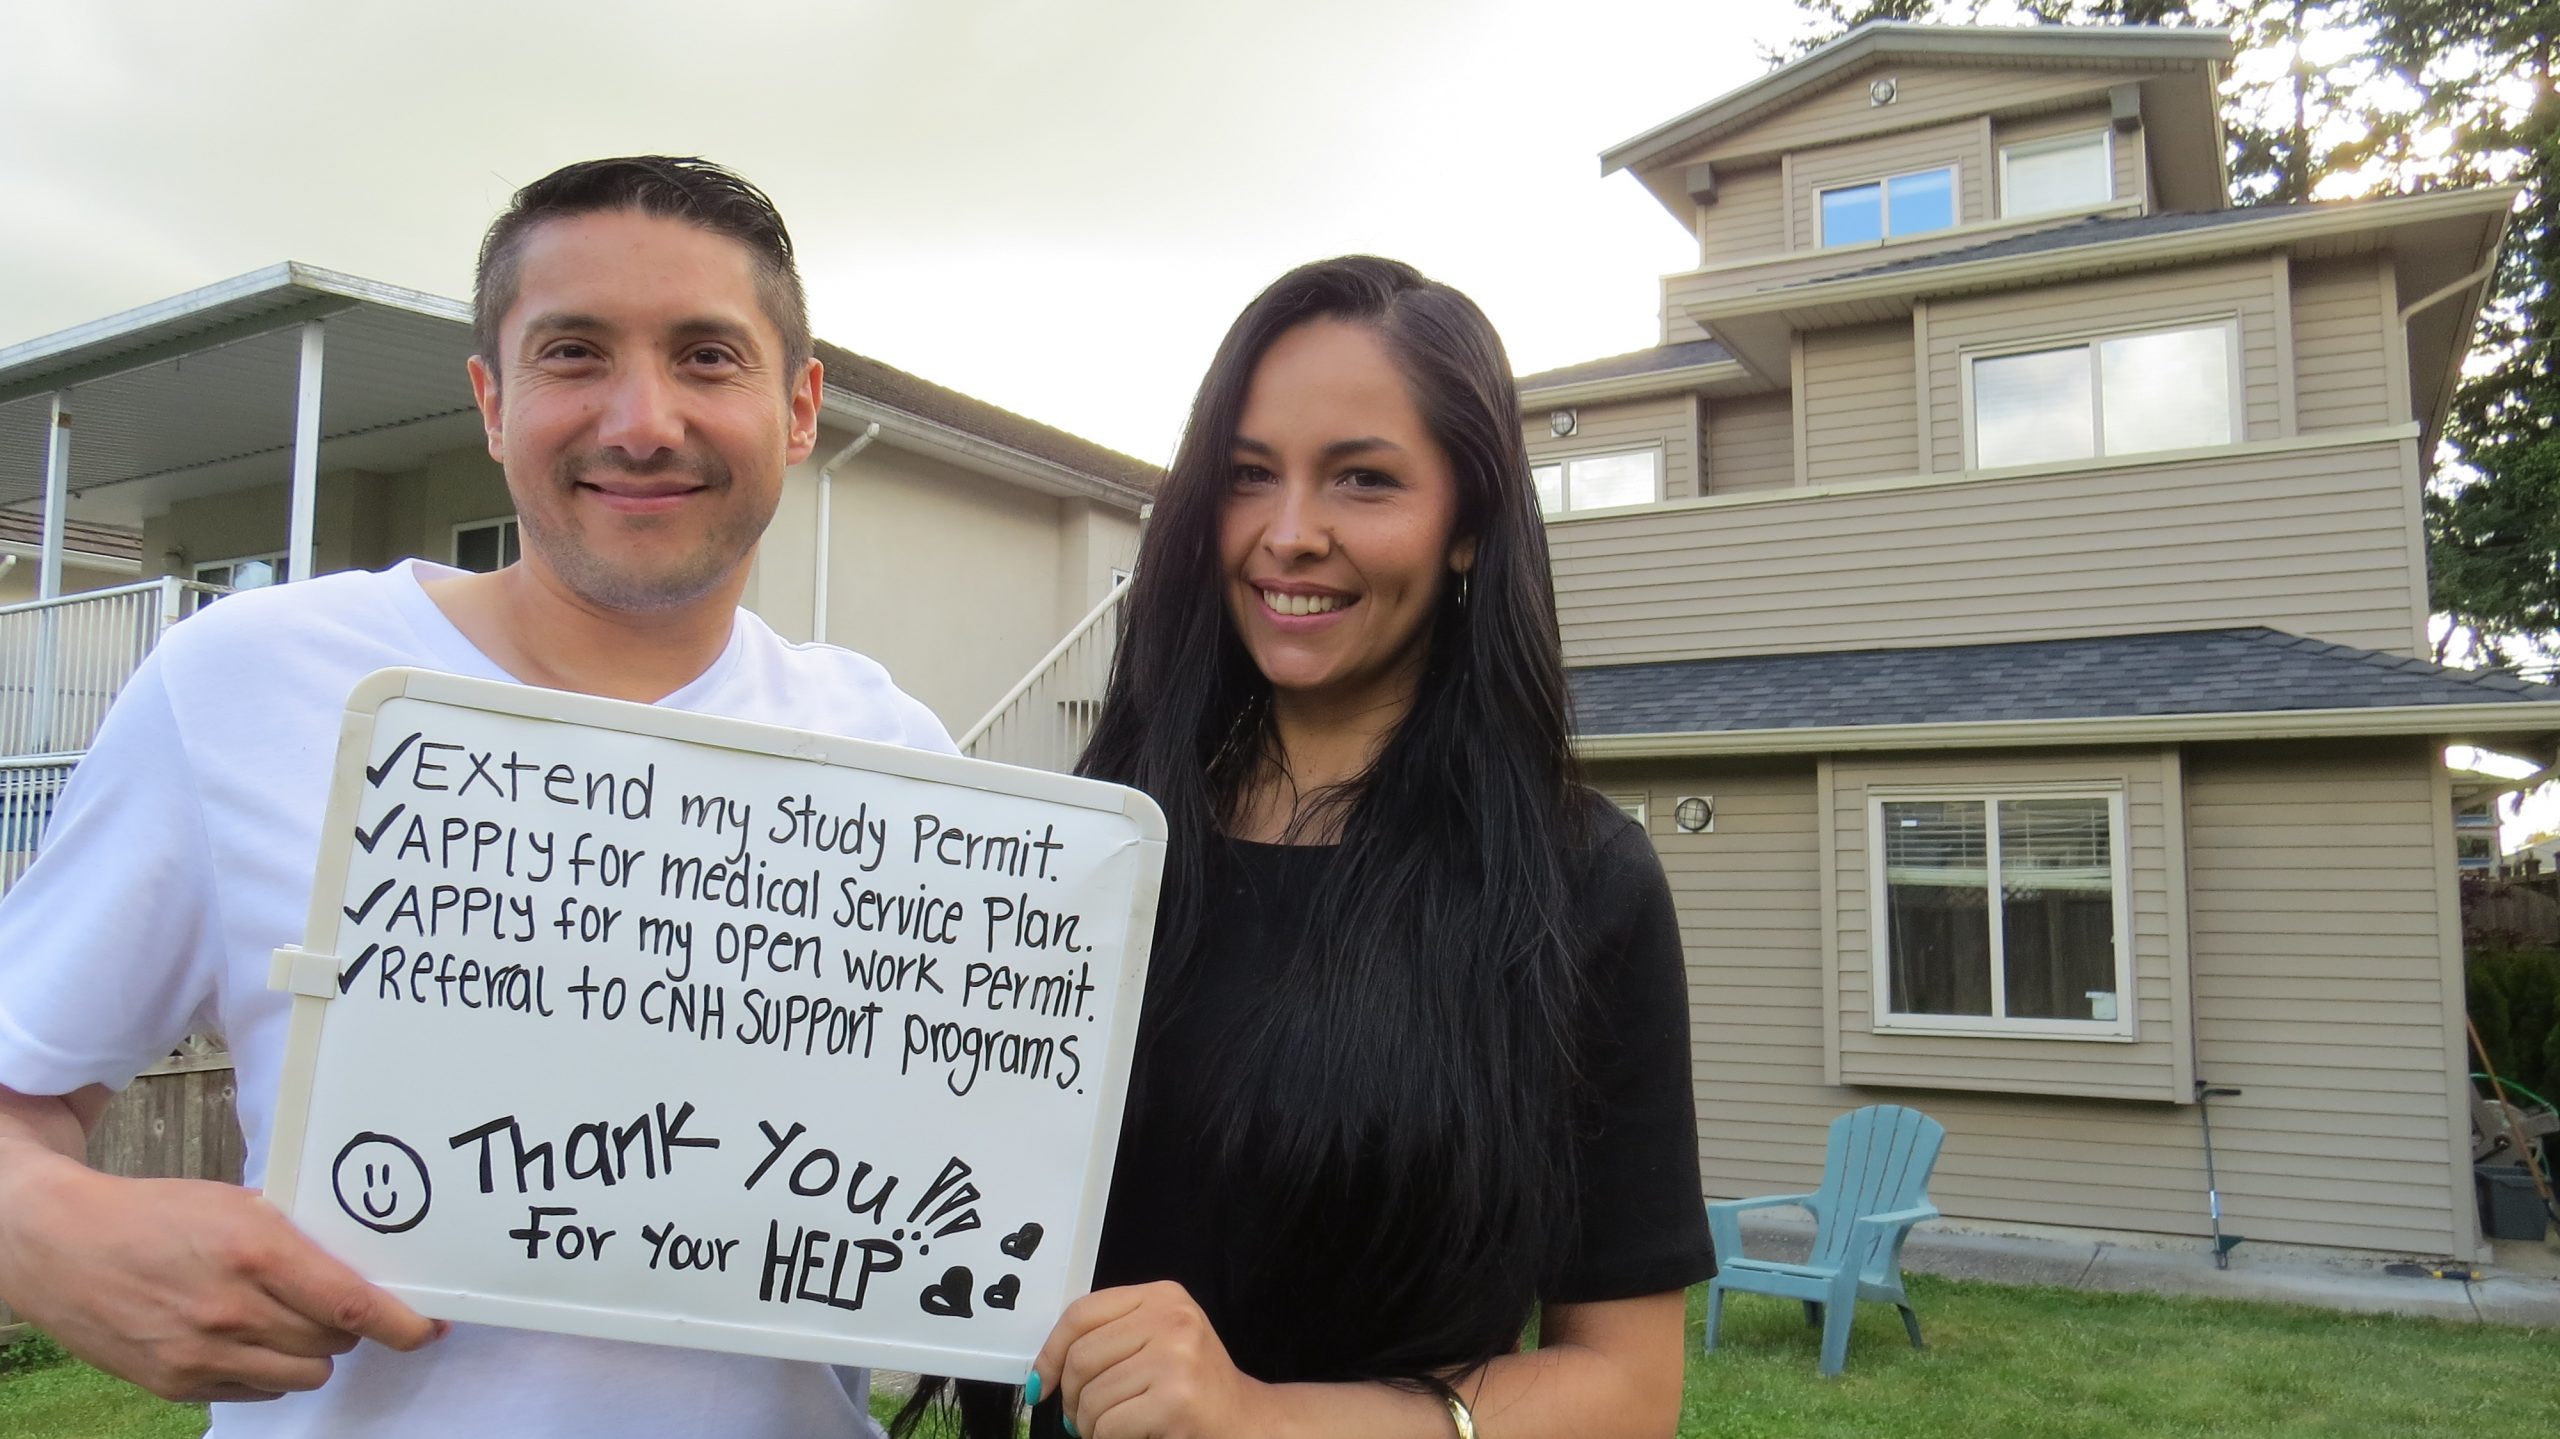 """A man and a woman outdoors in front of a house and holding a drawing board with """"Thank you for your help"""" on it."""